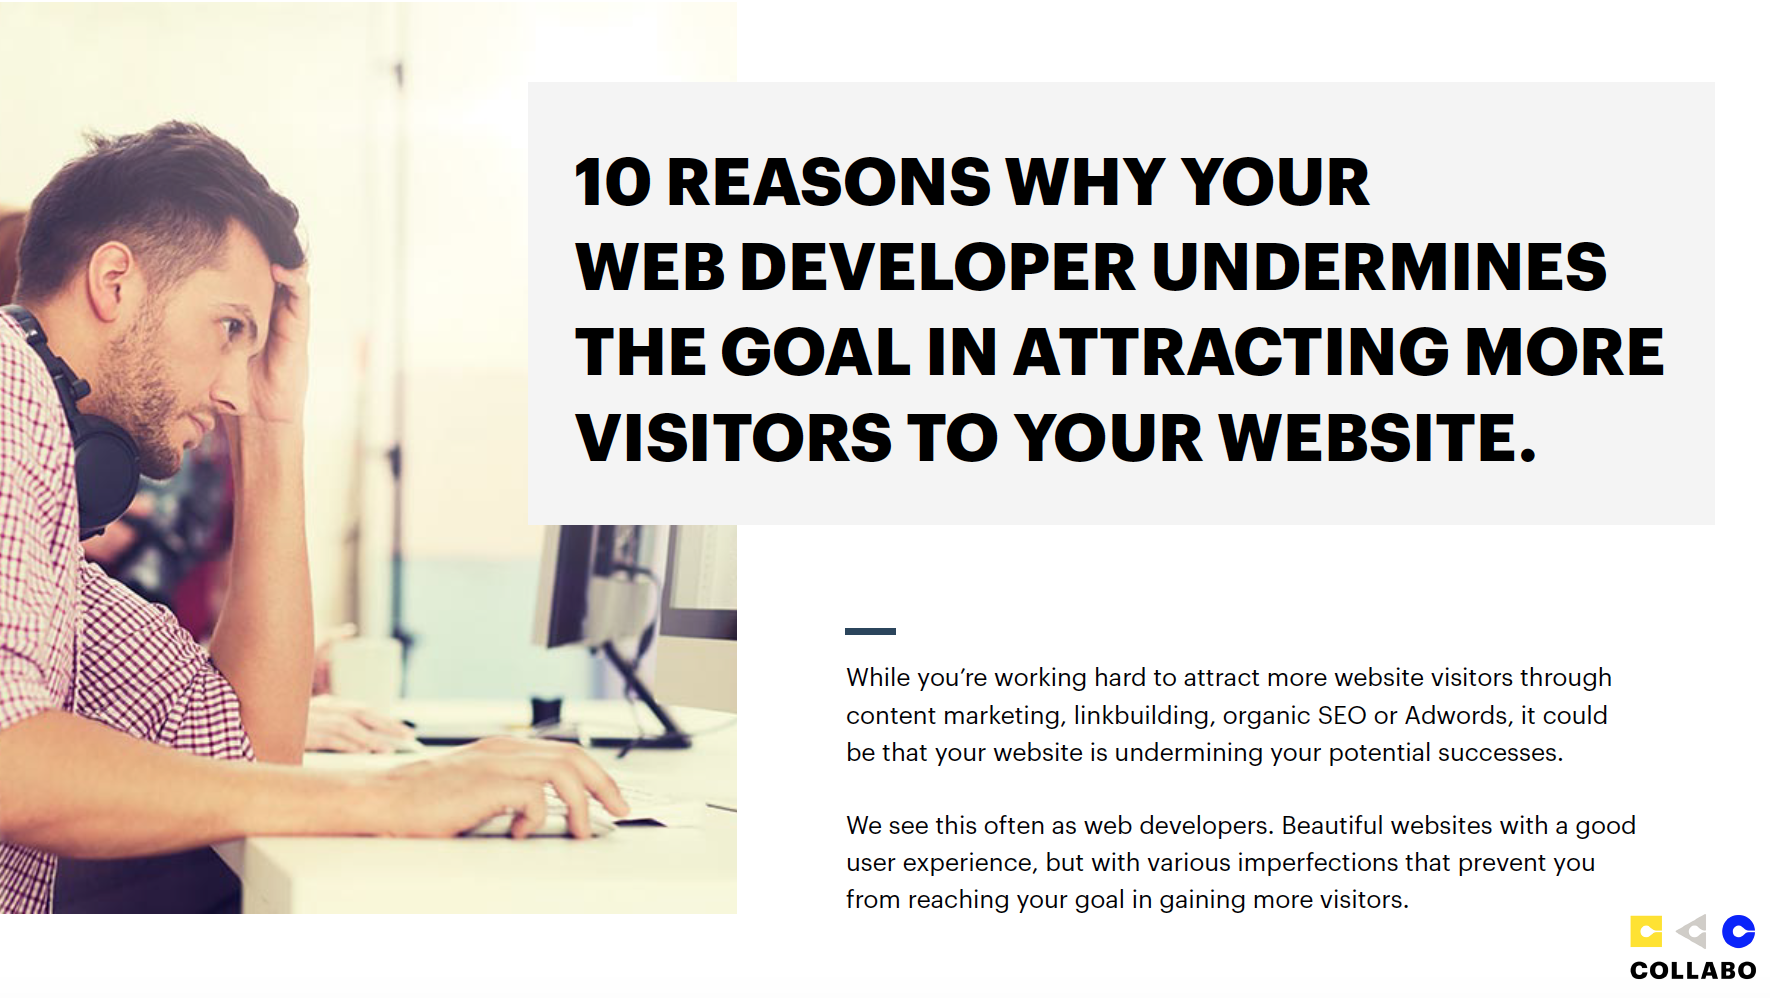 Tipsheet for attracting more visitors to your website-1.png